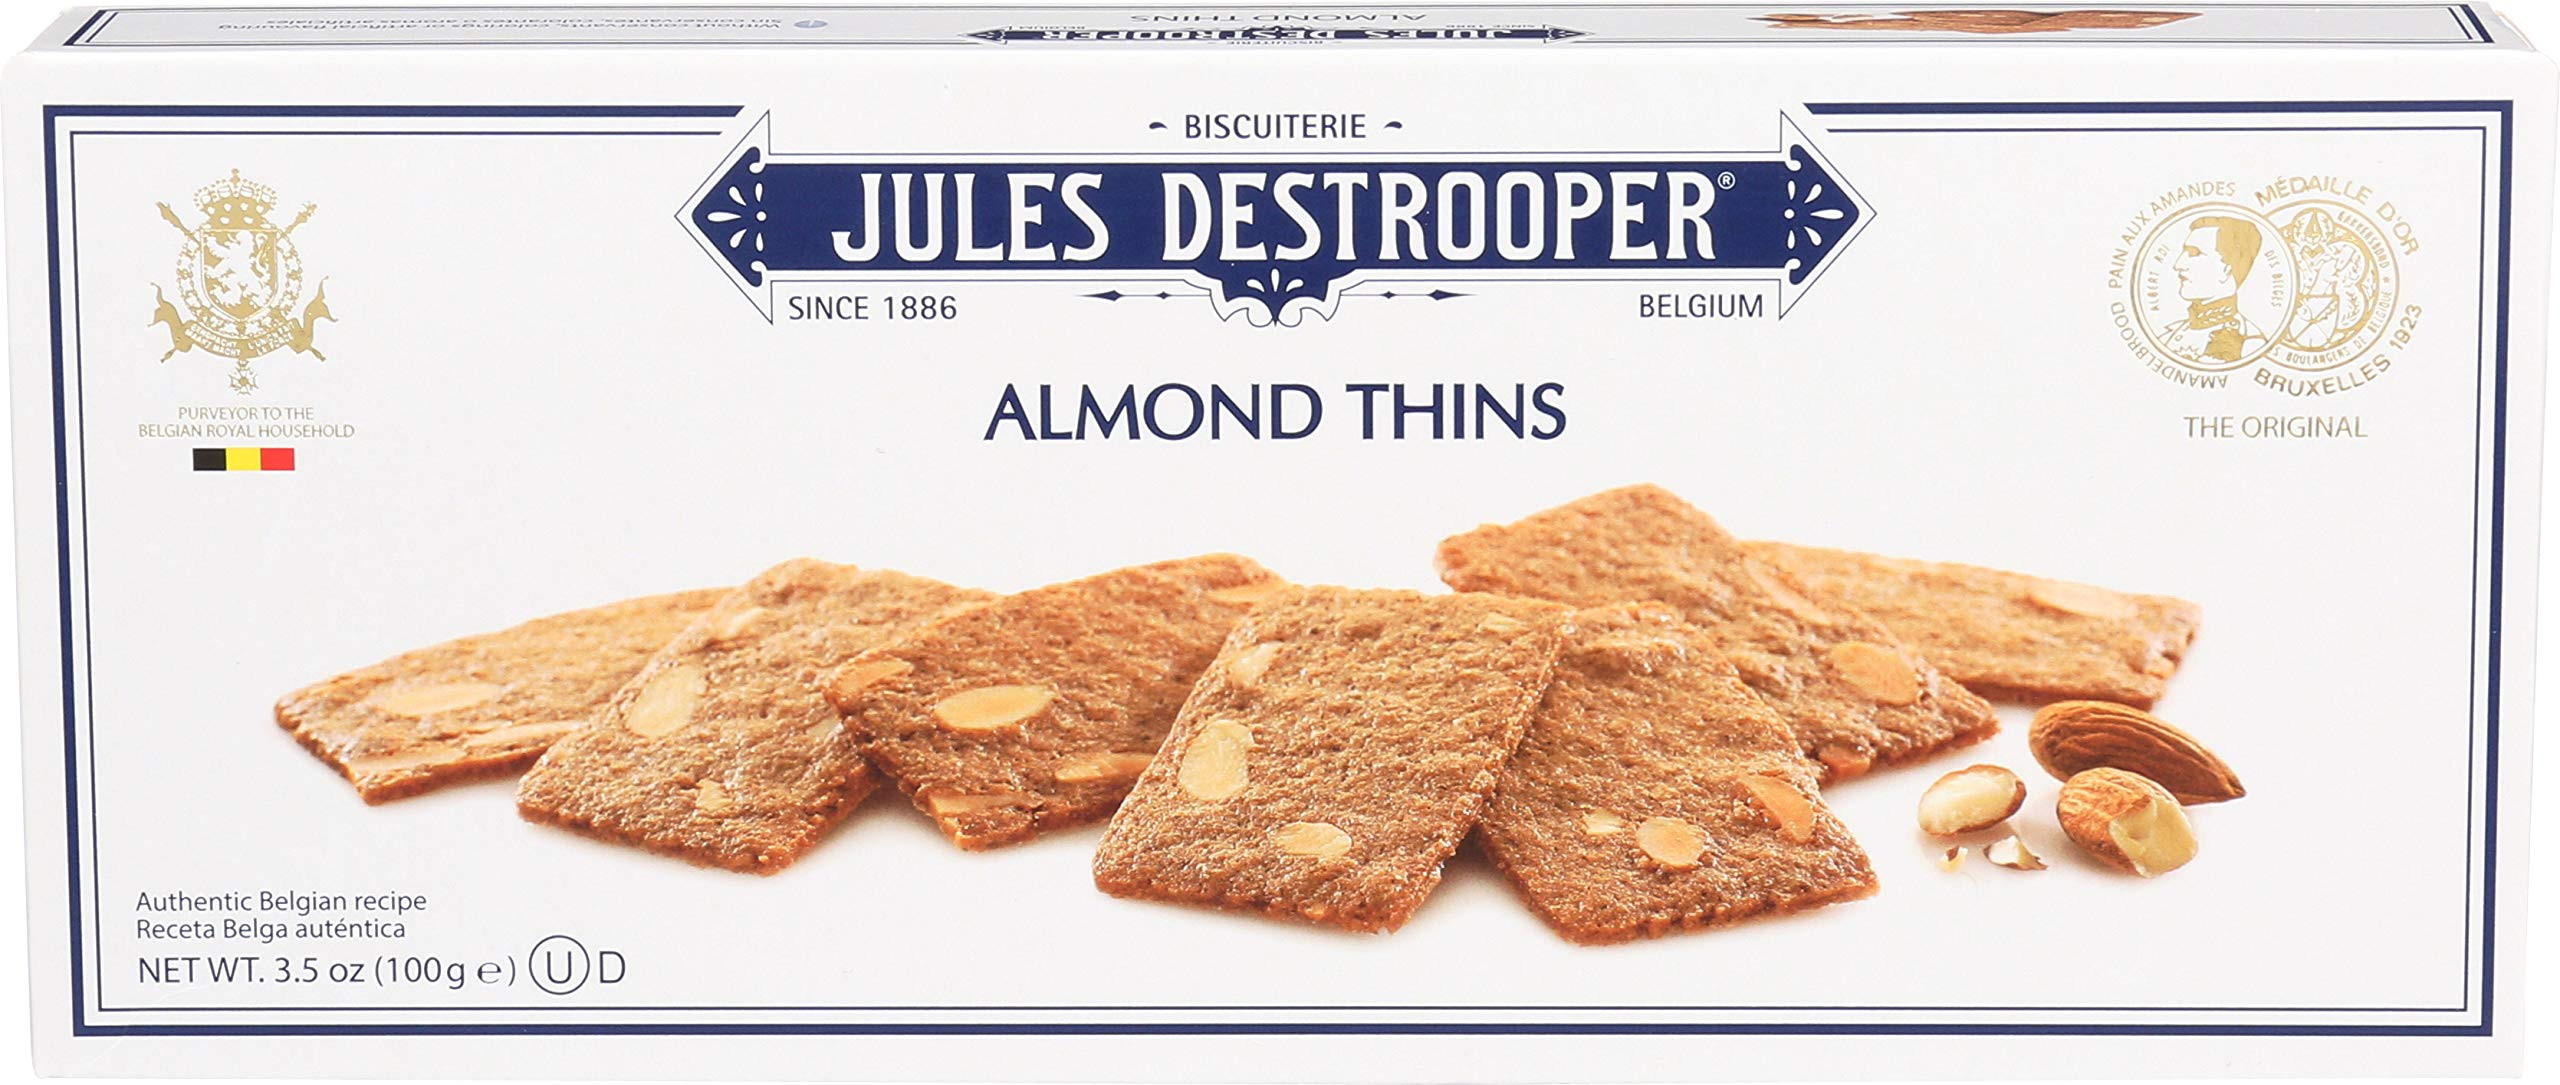 Jules Destrooper Almond Thins, Belgian Almond Butter Cookies, 3.5-Ounce Box (Pack